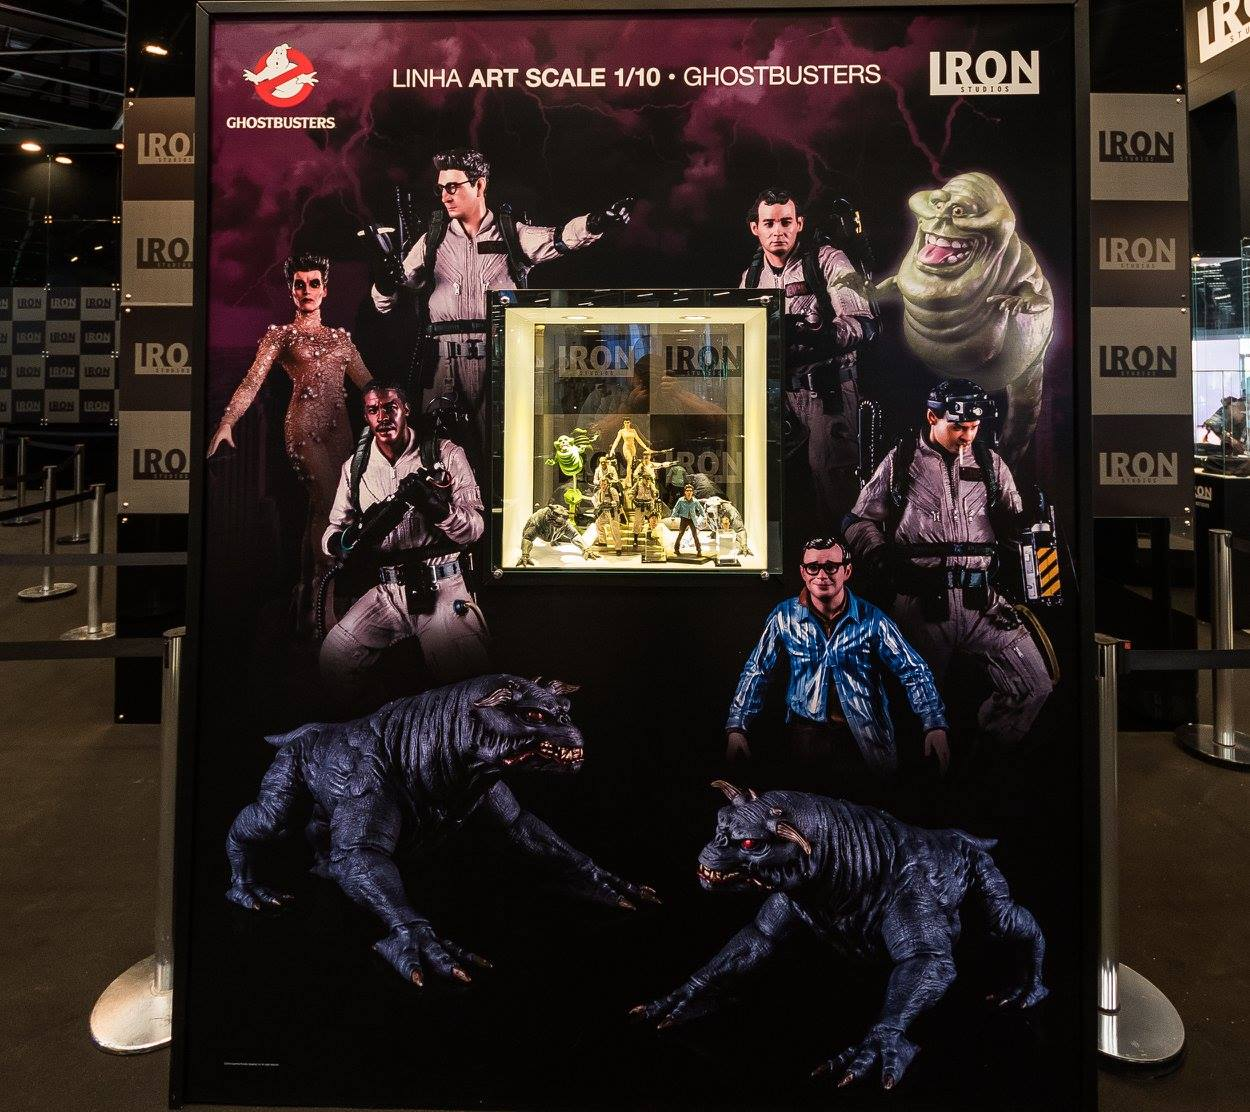 Iron Studios produced Ghostbusters Merchandise